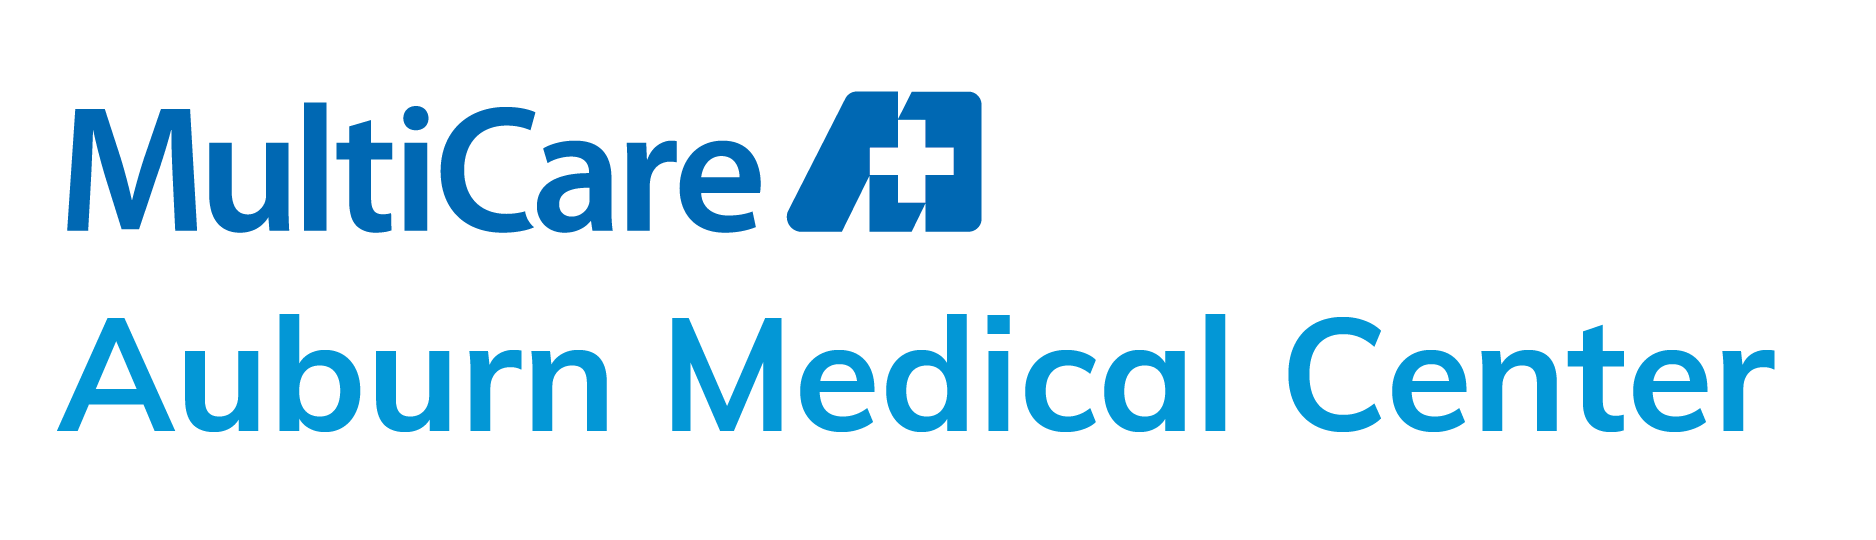 MultiCare_AuburnMedicalCenter-Color